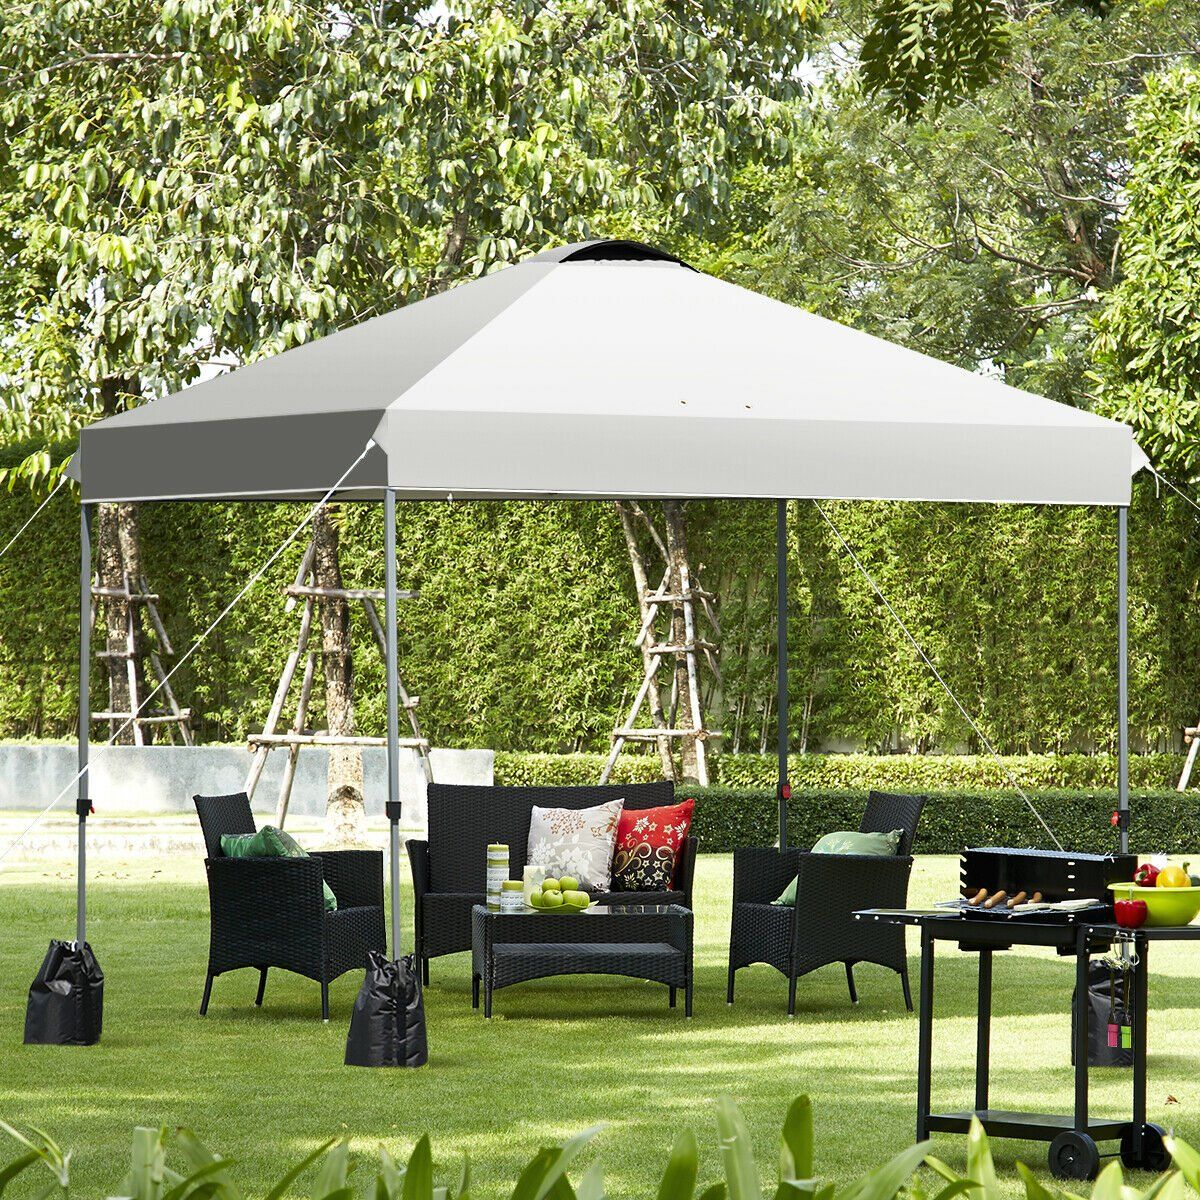 Gymax 10x10 Ft Pop Up Canopy Tent Wheeled Carry Bag 4 Canopy Sand Bag Walmart Com In 2020 Pop Up Canopy Tent Canopy Tent Canopy